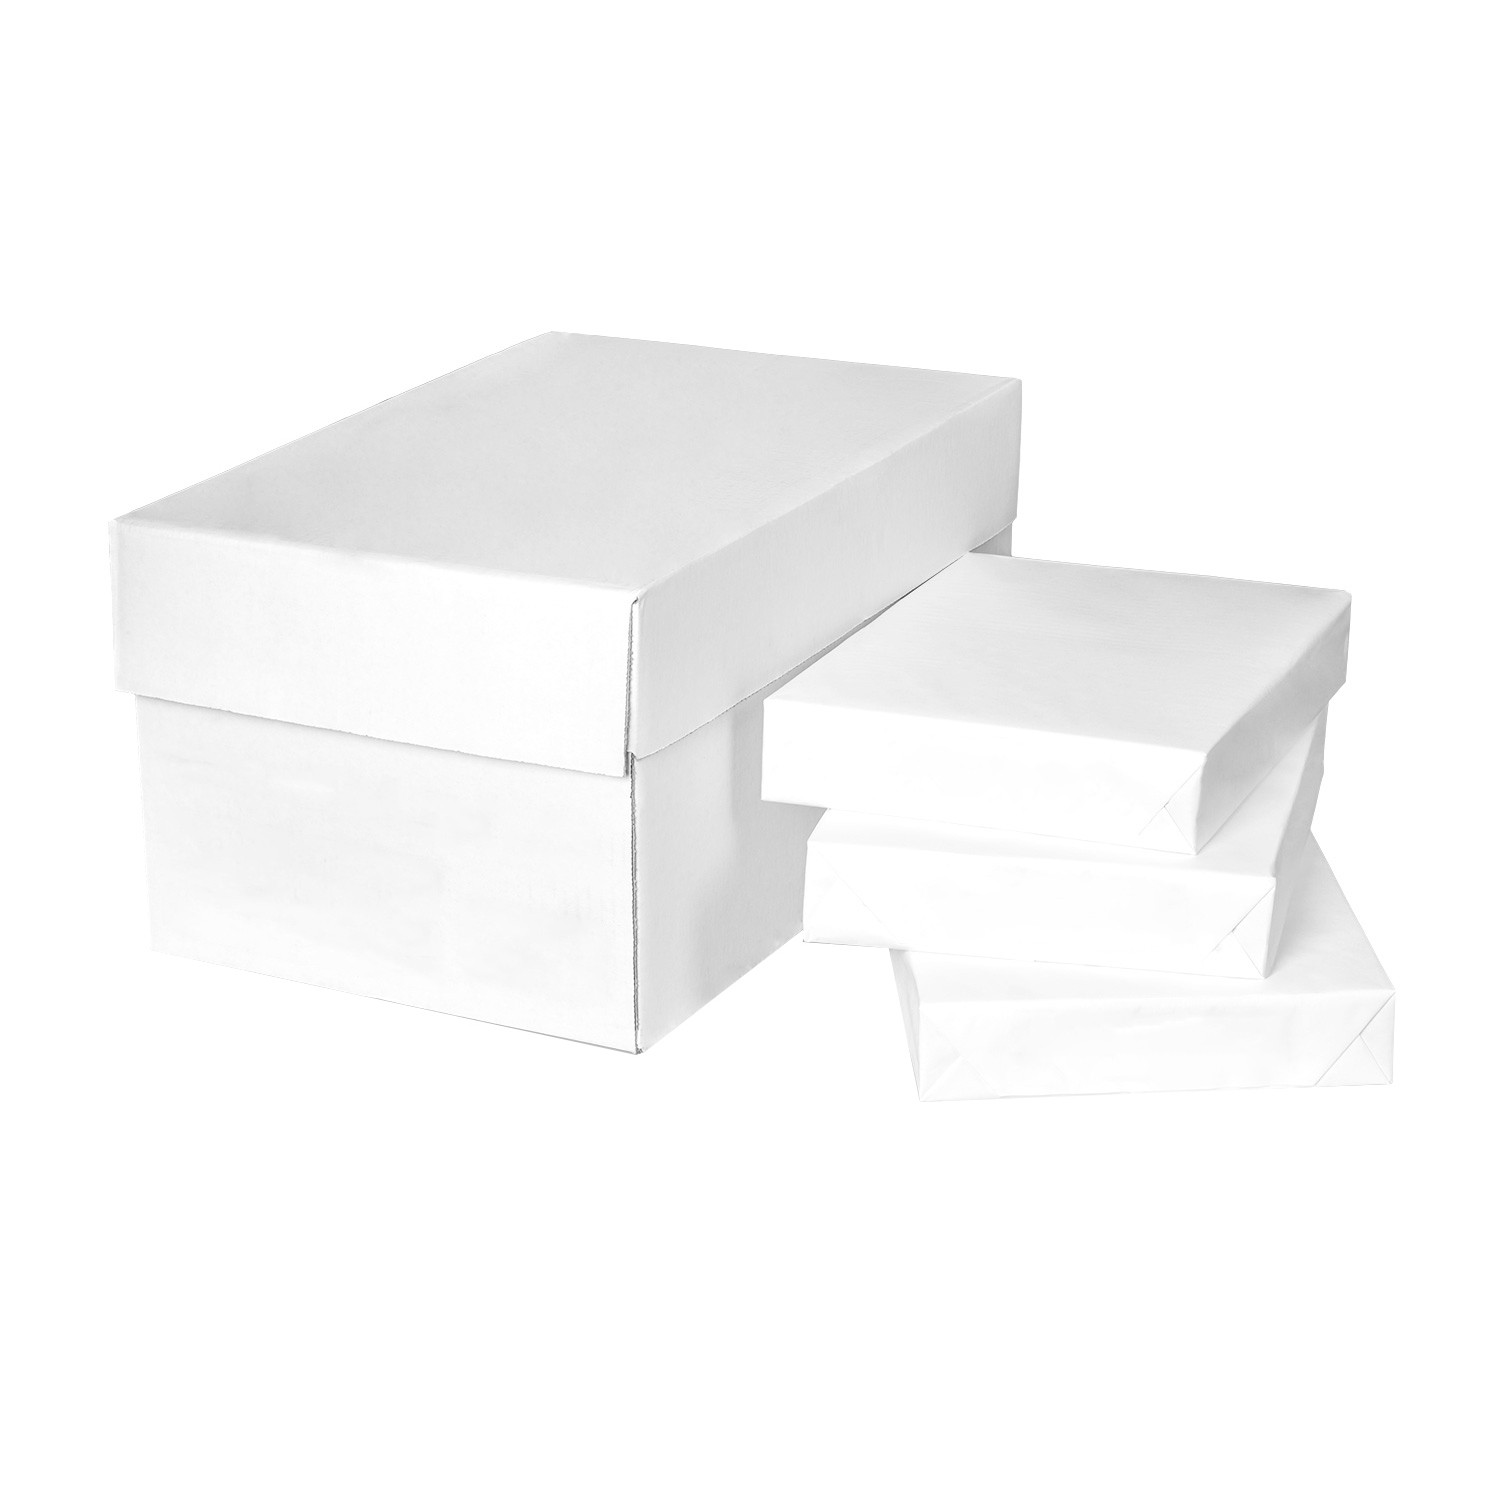 Non-Branded 92 Bright Multipurpose Letter Copy Paper - 8.5 x 11 Inches (500 Sheets)